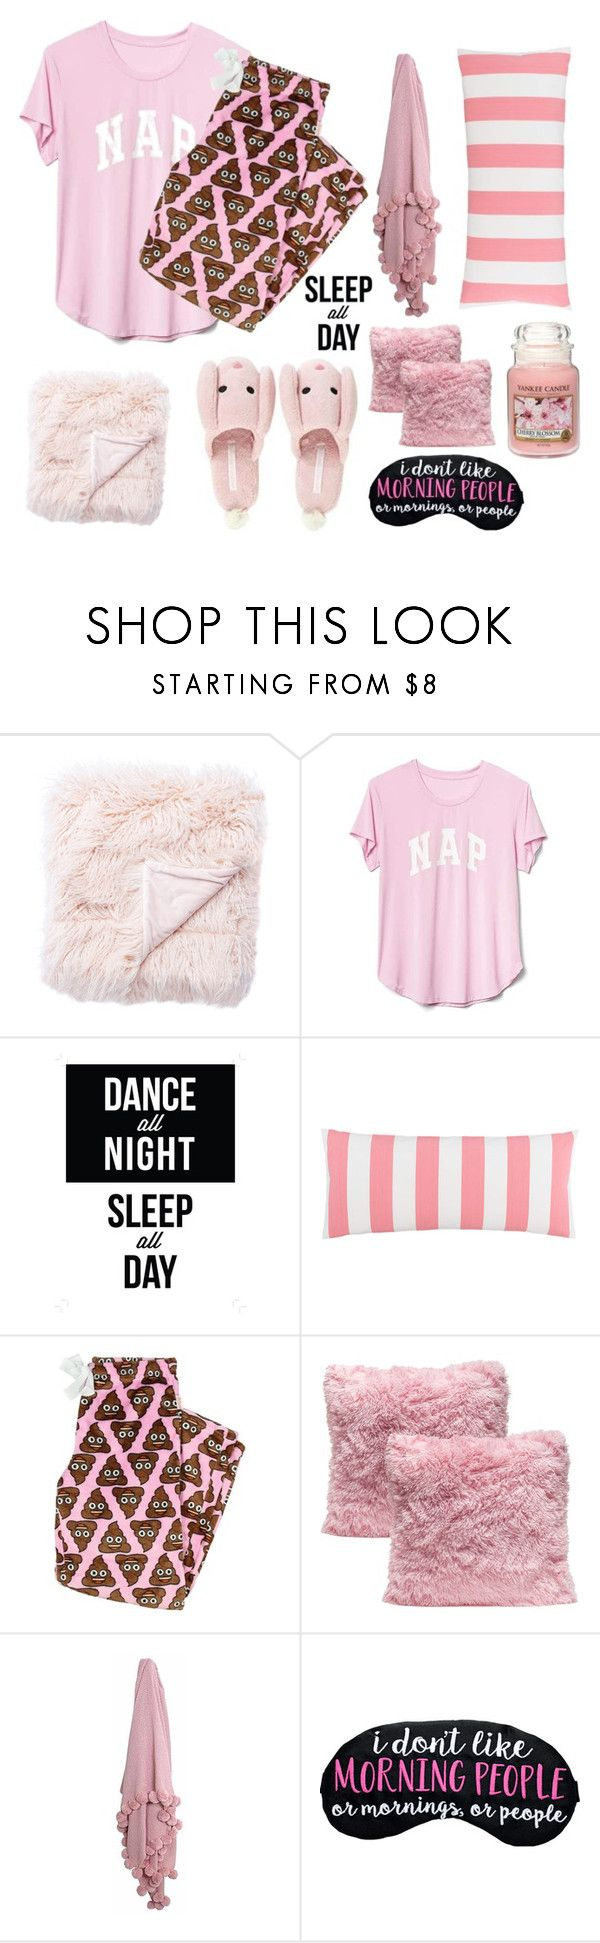 """12.05.2017"" by renyic ❤ liked on Polyvore featuring Jaipur, Gap, Pine Cone Hill and Yankee Candle"